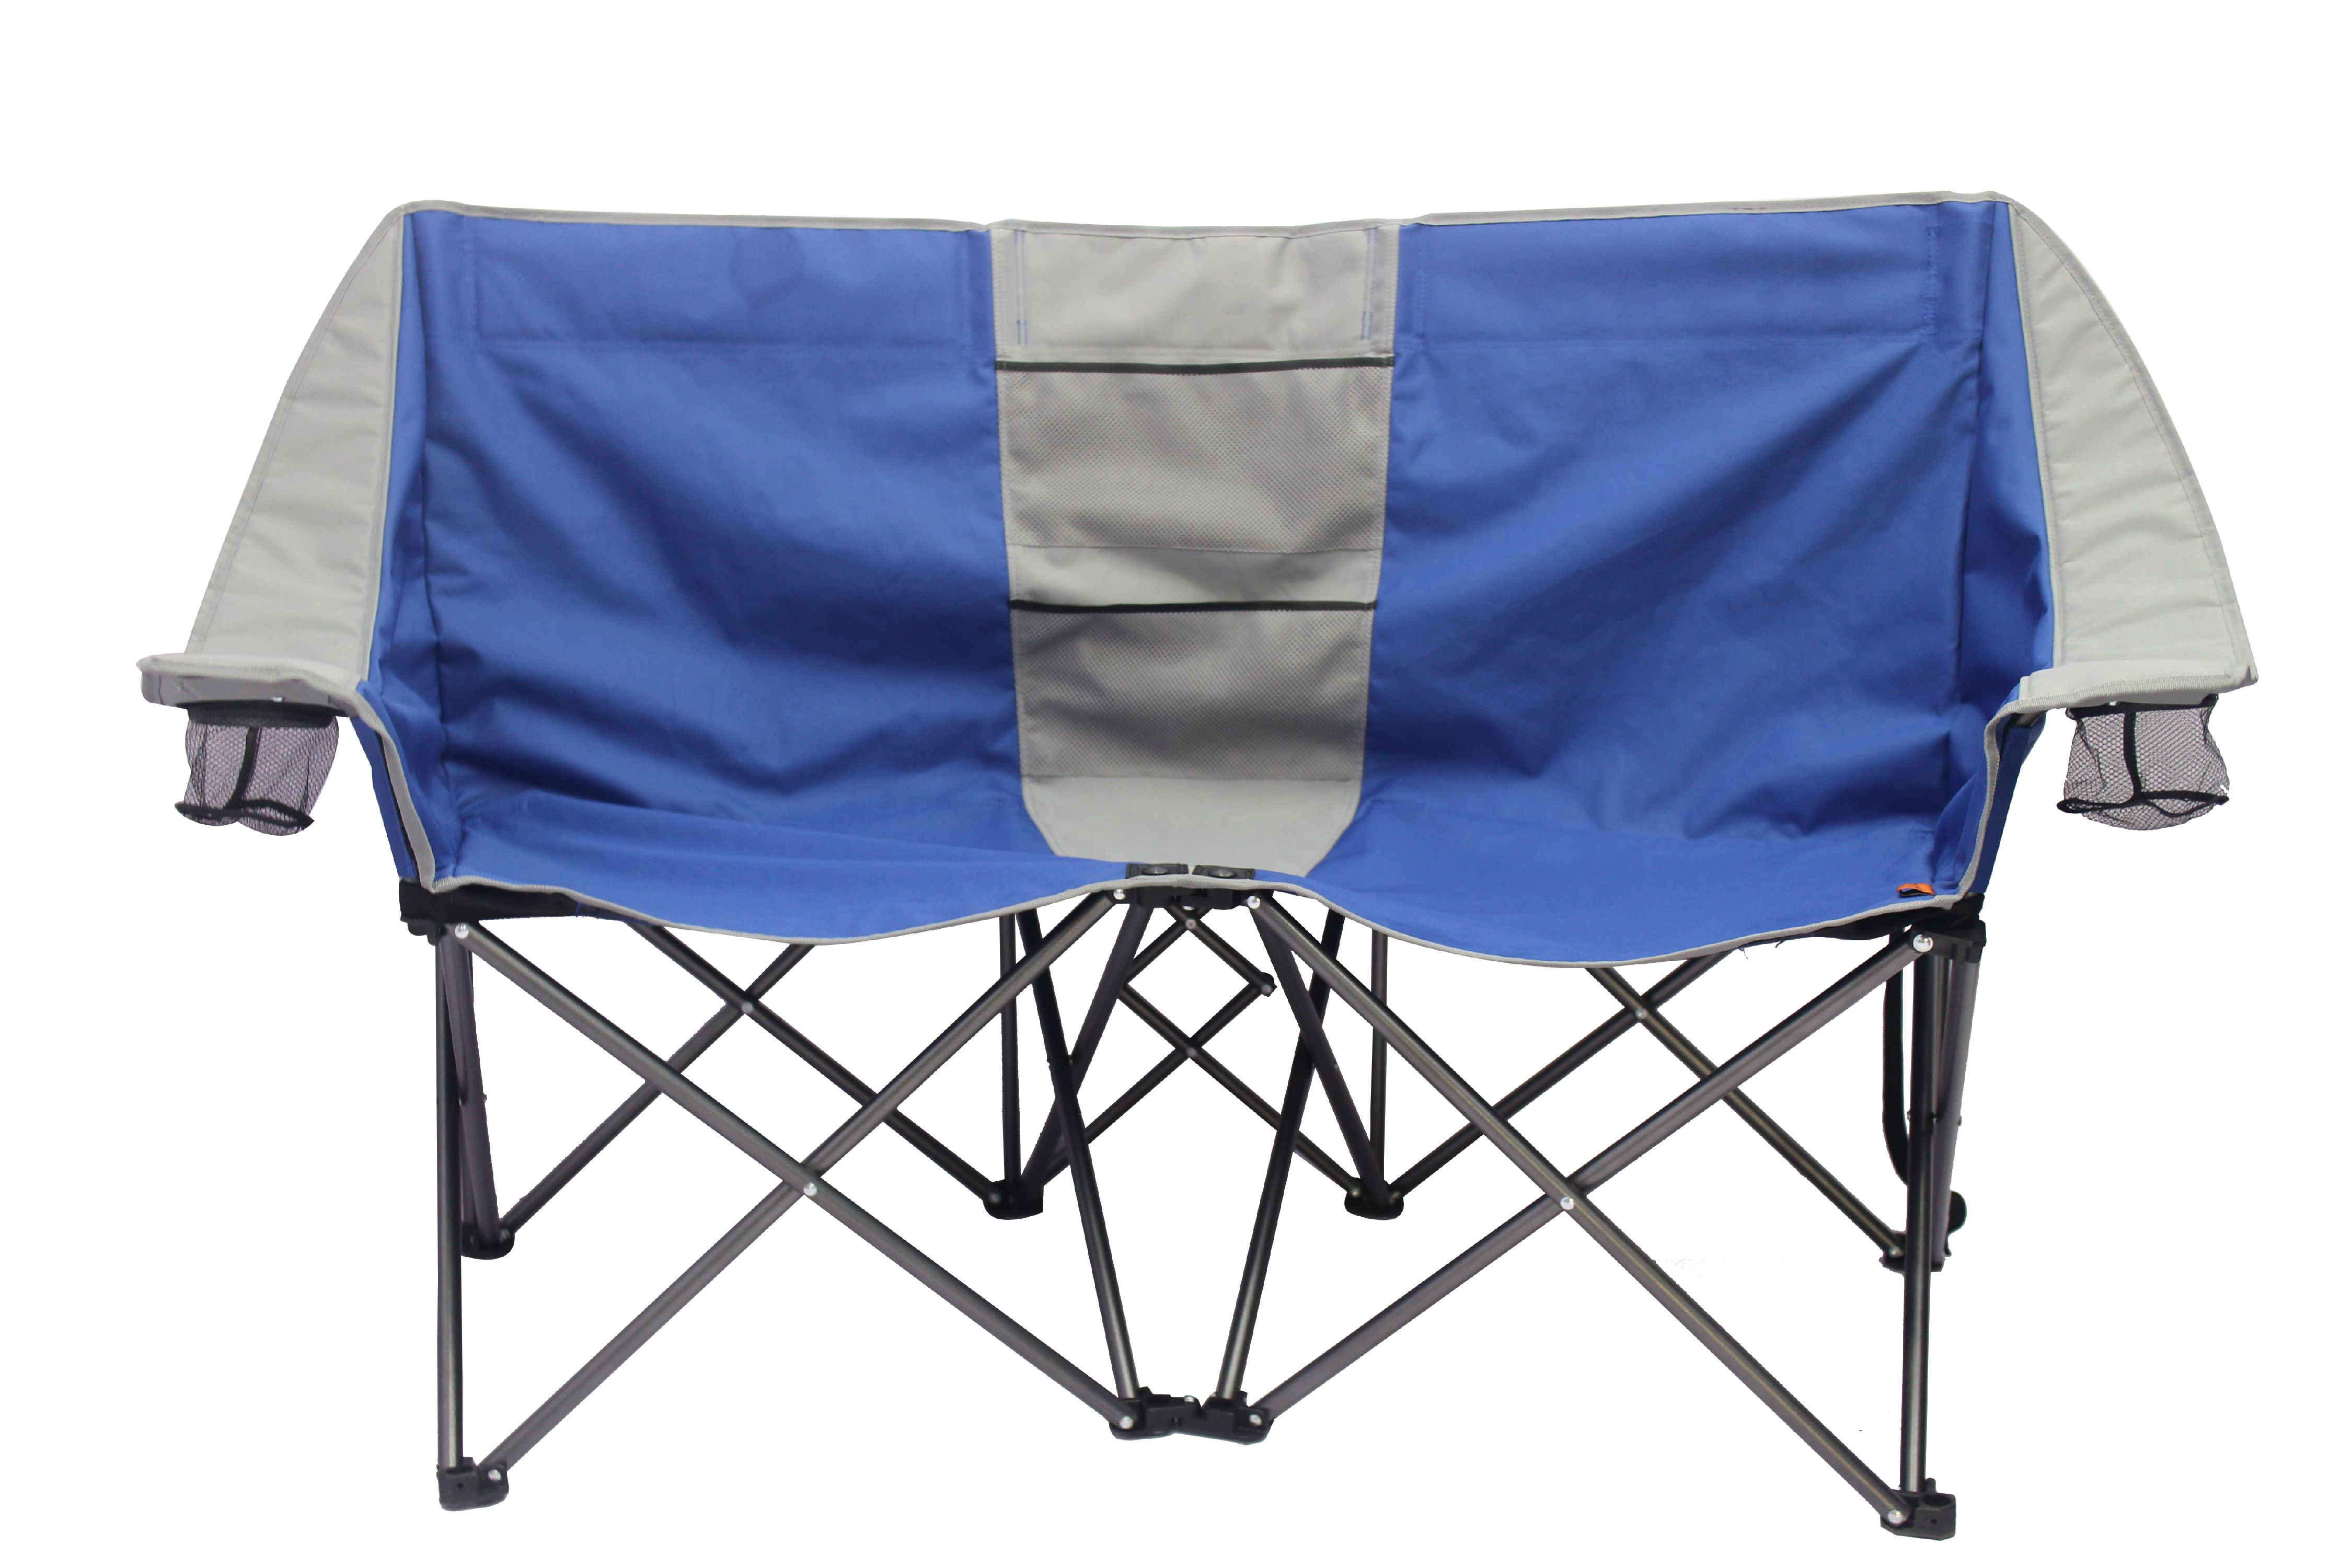 Ozark Trail 2 Person Conversation Chair